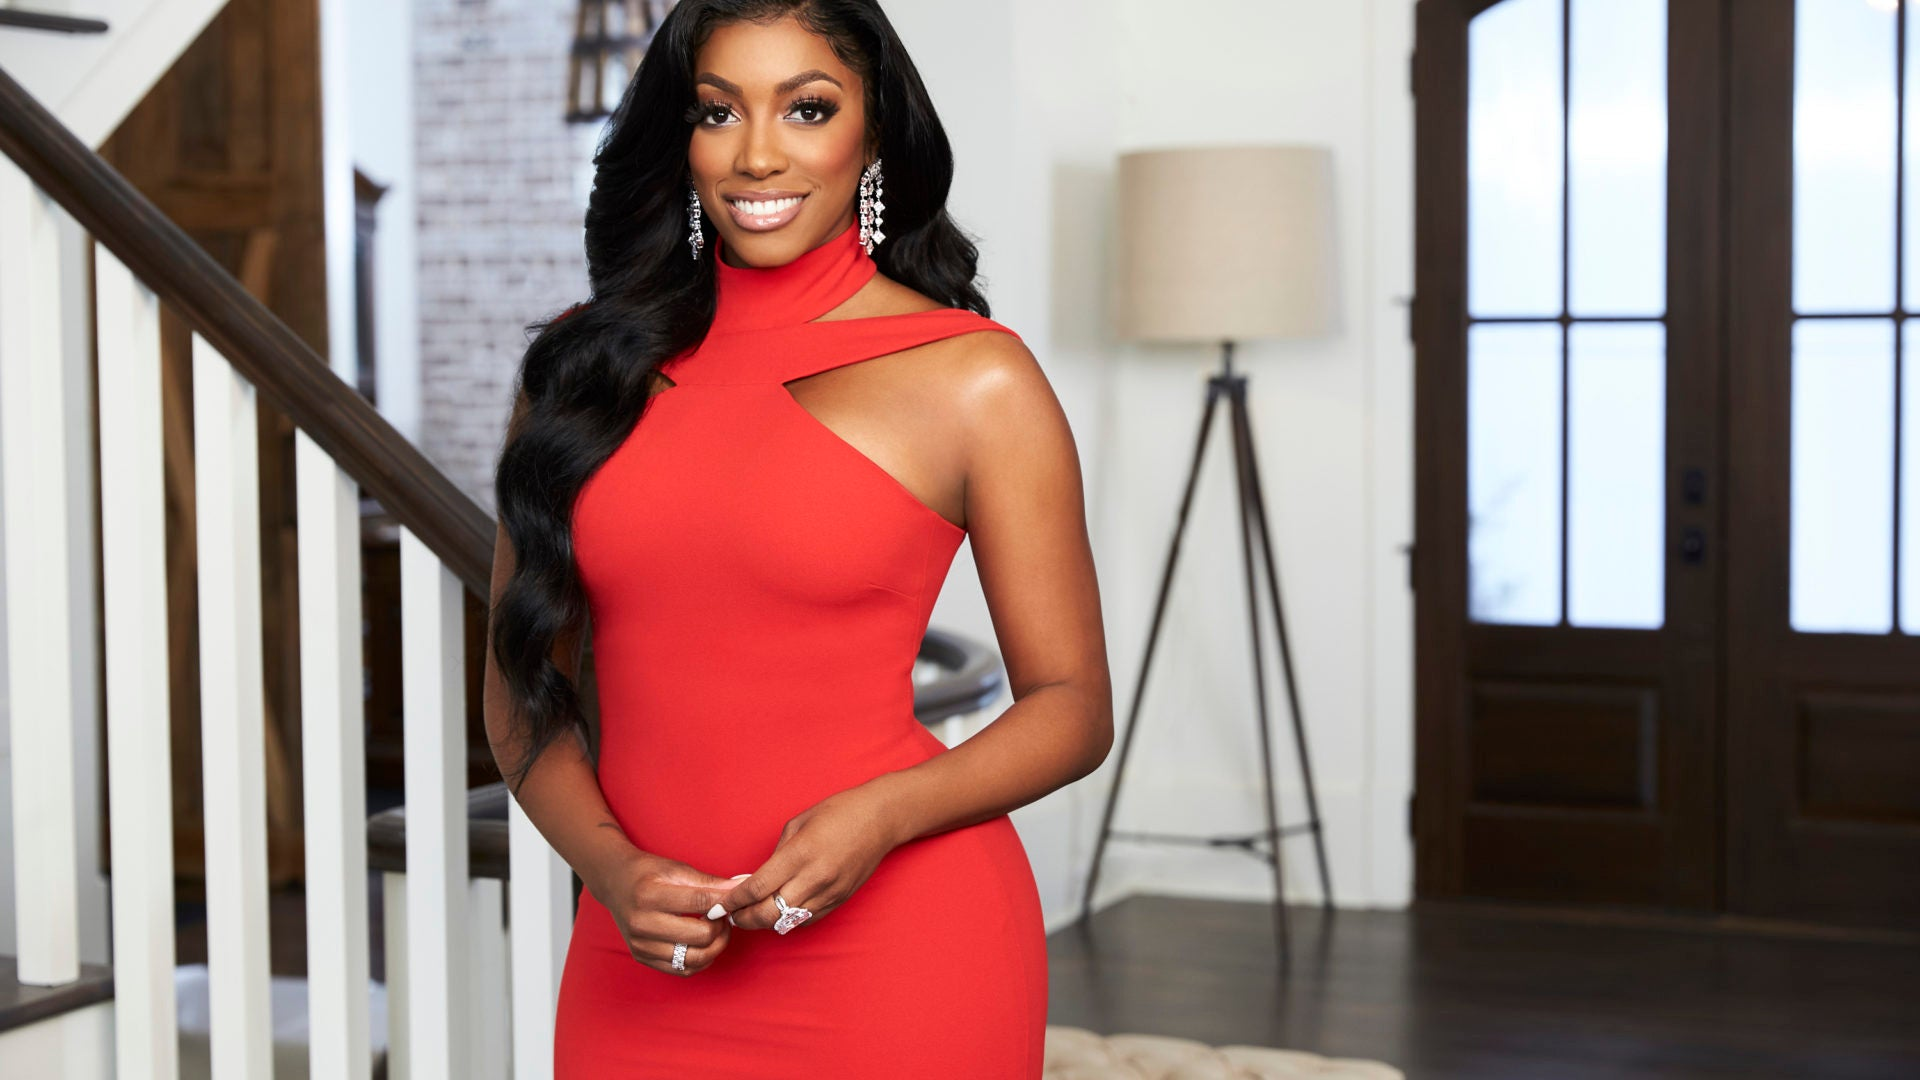 RHOA Star Porsha Williams Confesses She Has Natural Hair But Still Relaxes Her Edges